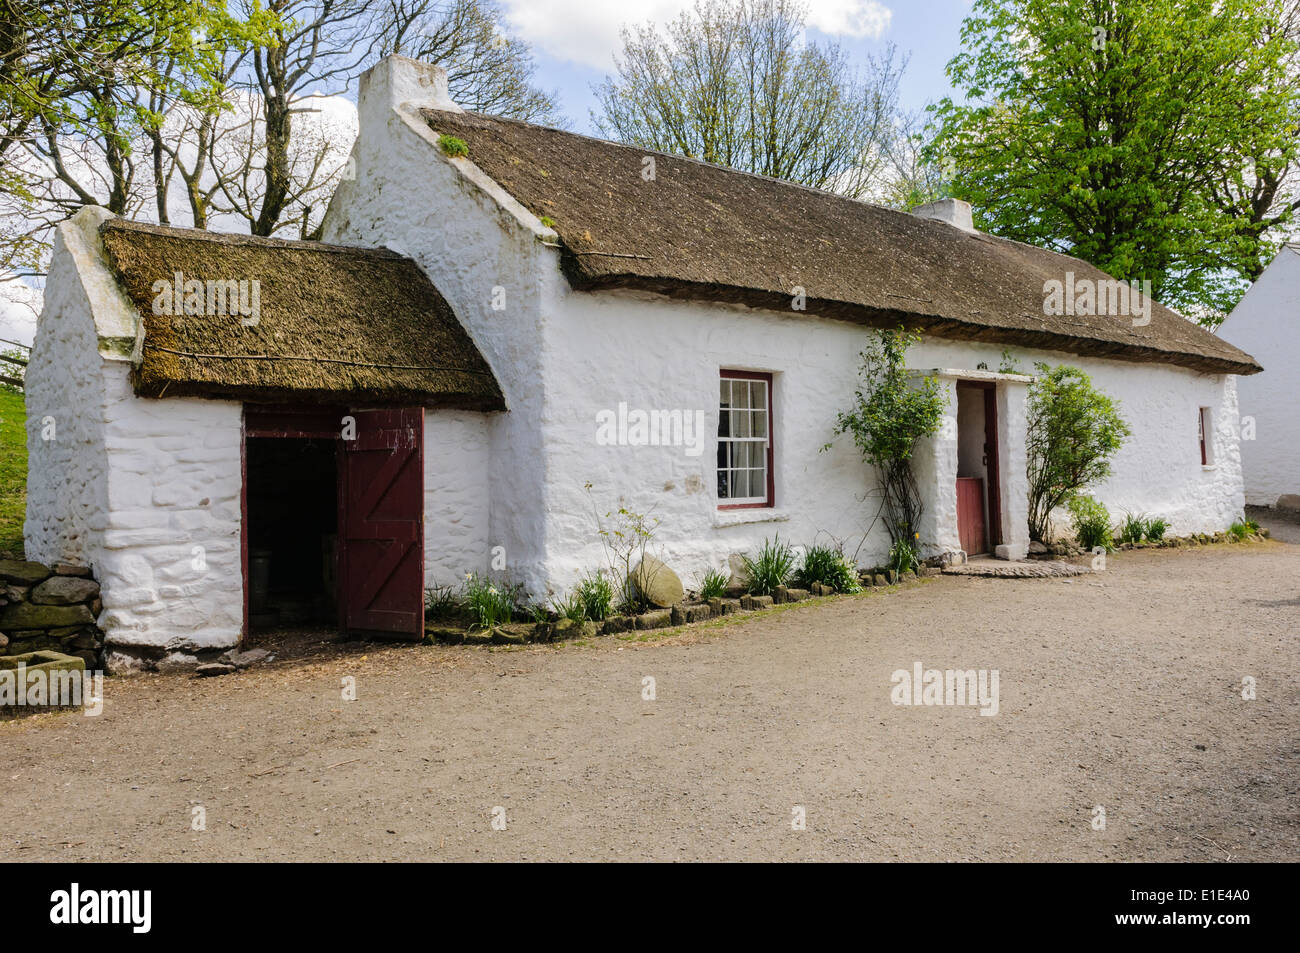 A Traditional Irish Rural Farmhouse With Thatched Roof And Whitewashed Walls In The Ulster American Folk Park Northern Ireland